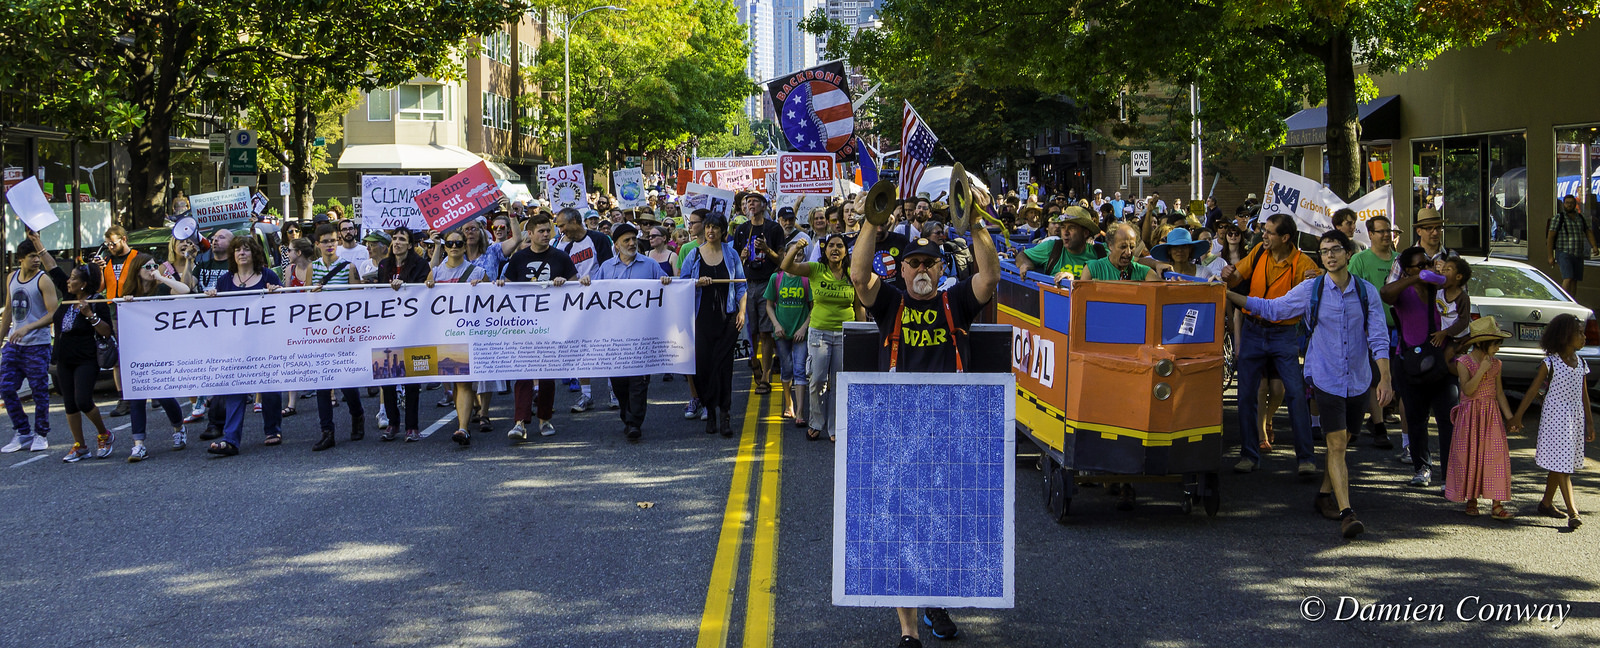 SeattleClimateMarchFrontMedRes-byDamienConway.jpg